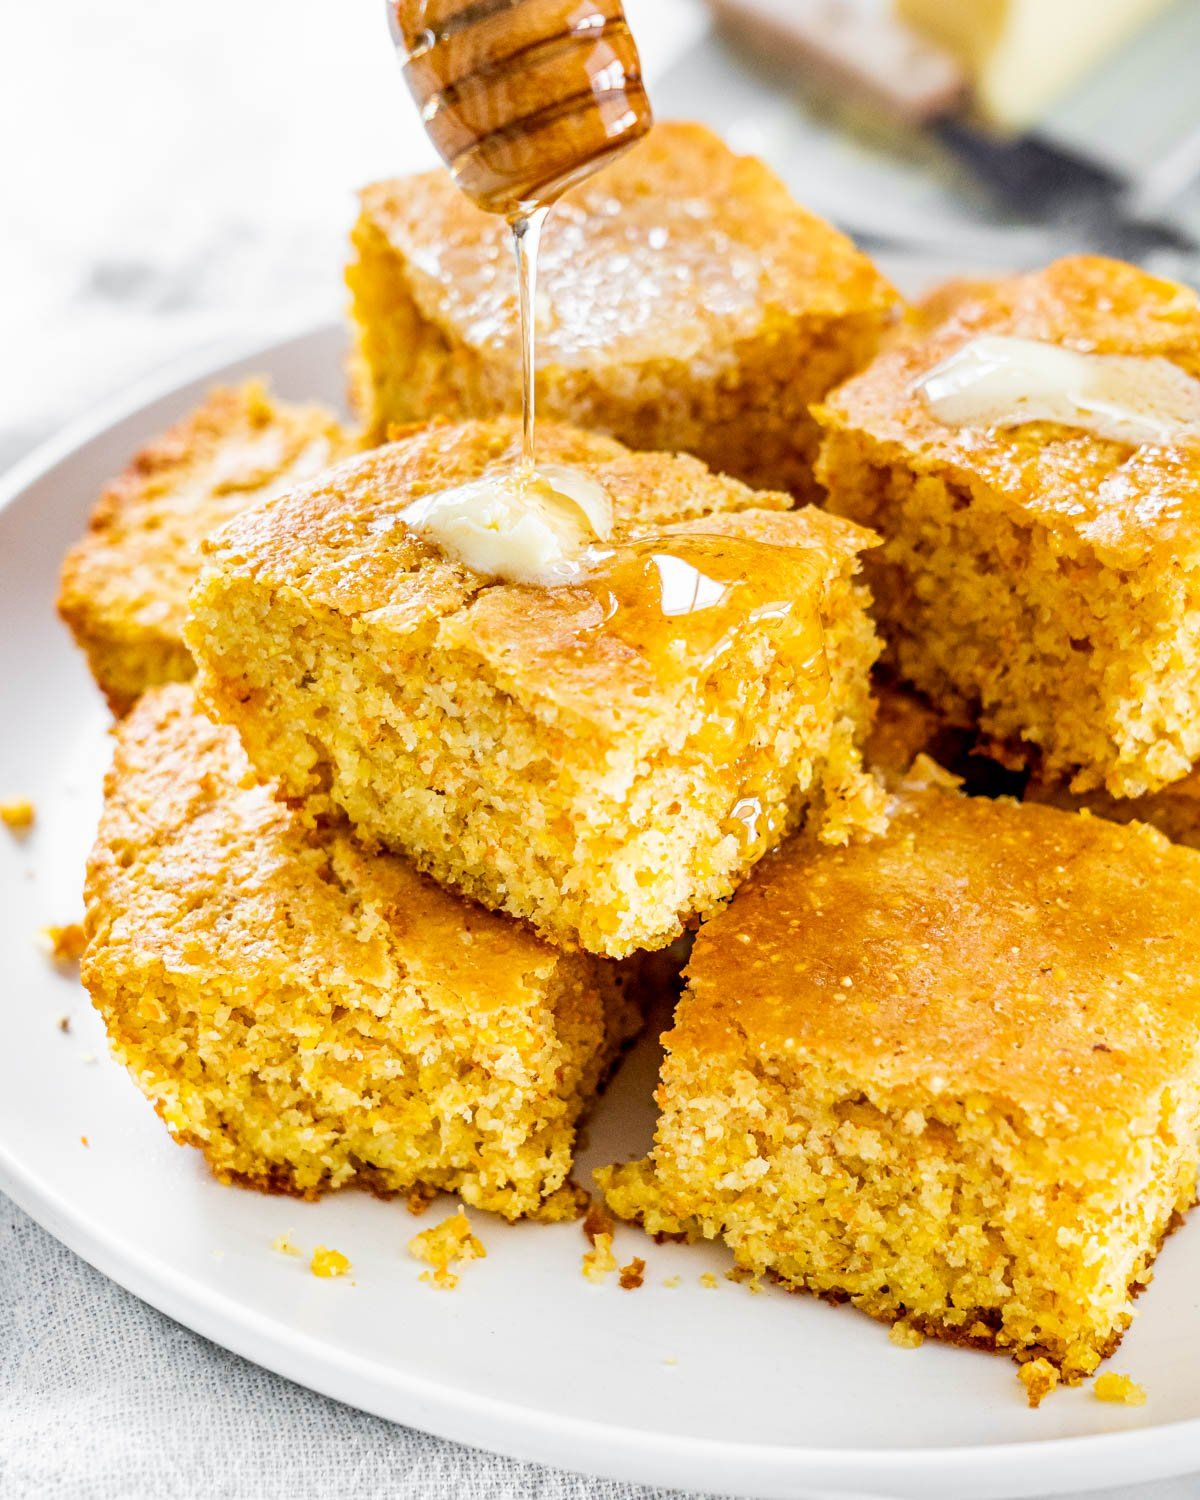 This Easy Cornbread Is Your Newest Counter Top Staple With Its Crispy Edges And Soft Inside It S Good For Breakfast In 2020 Corn Bread Recipe Cornbread Easy Cornbread